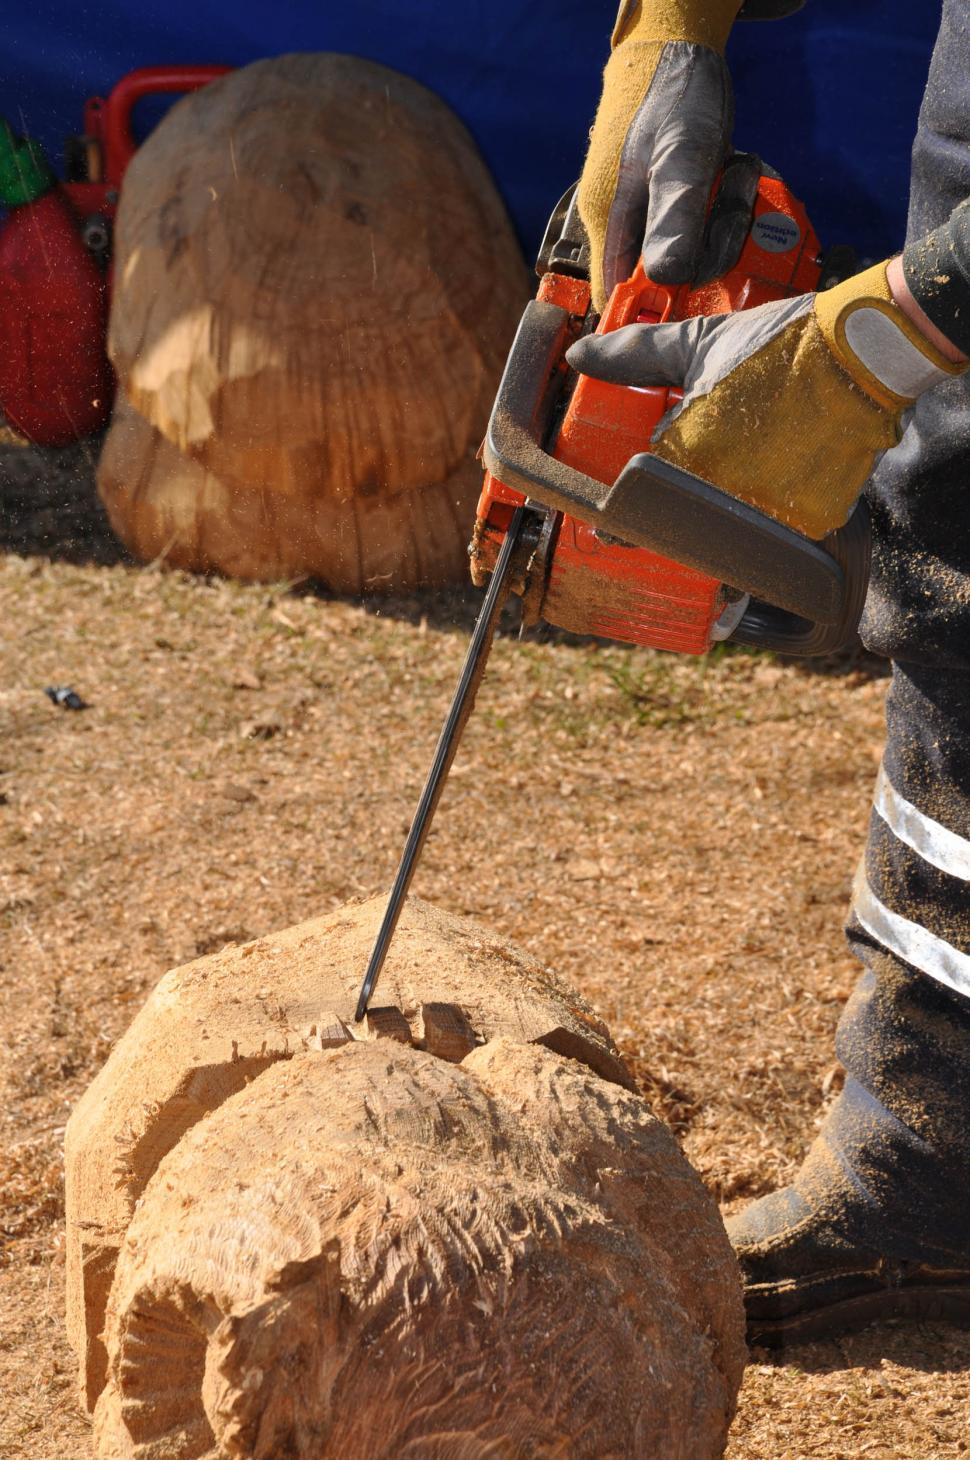 Download Free Stock Photo of Craftsman is working with chainsaw